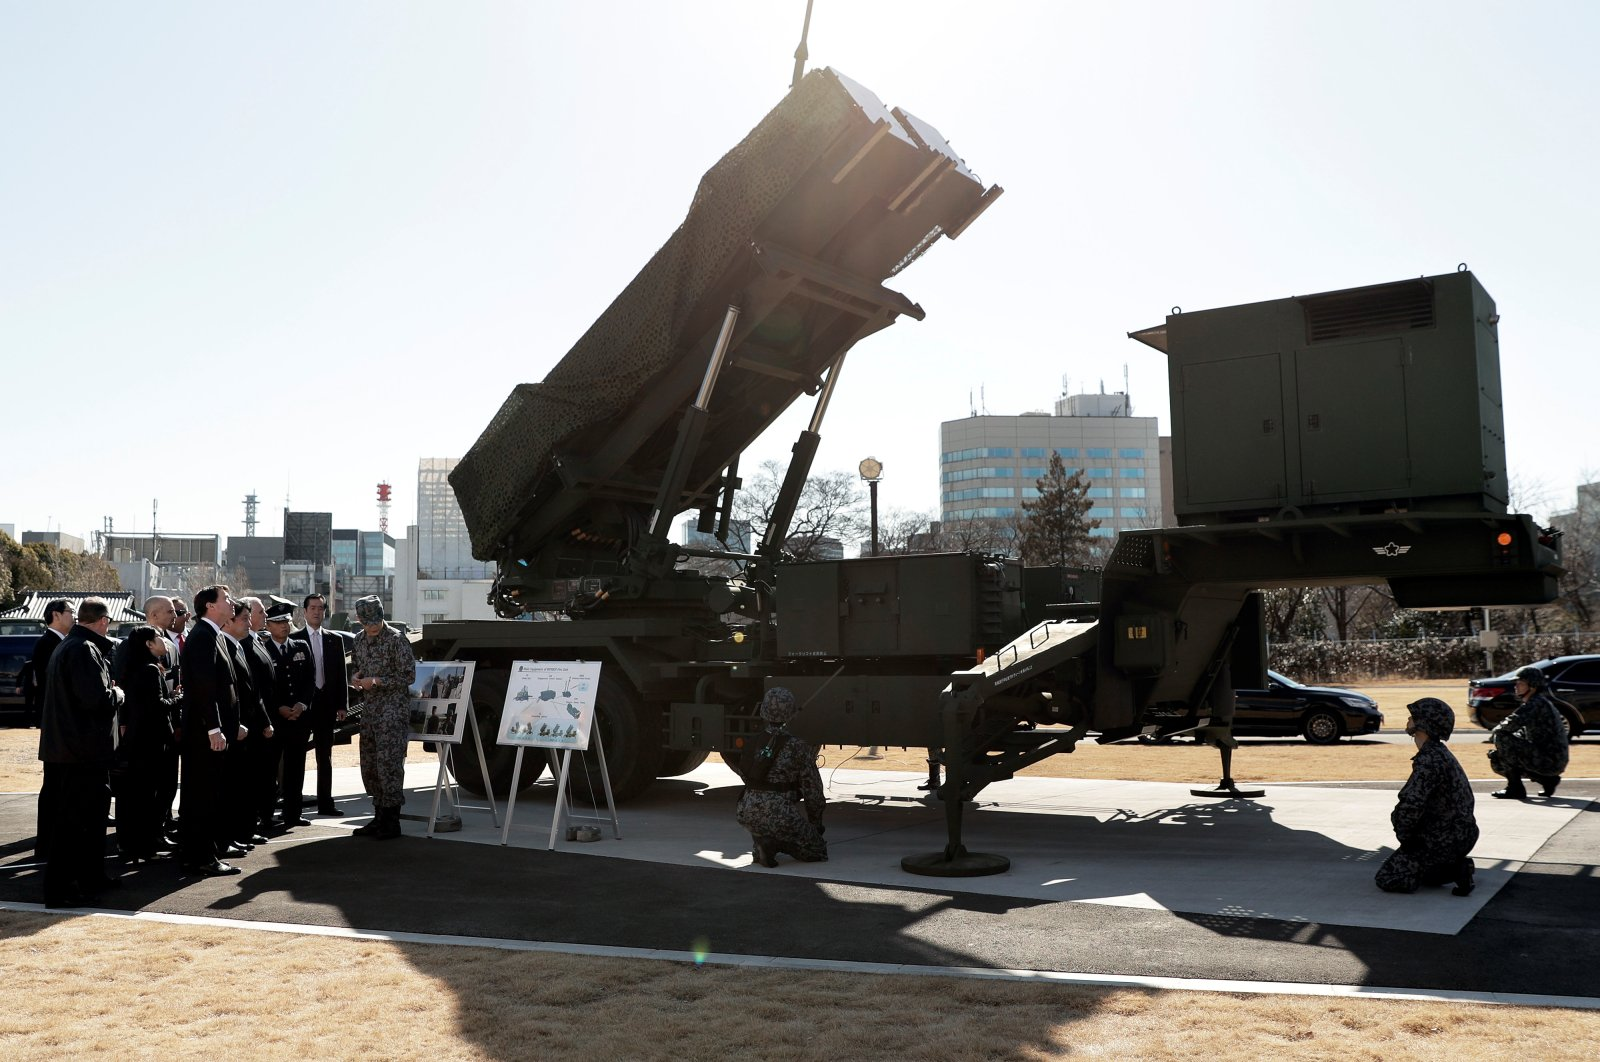 U.S. Vice President Mike Pence inspects the Patriot Advanced Capability-3 (PAC-3) missile launch system with Itsunori Onodera, Japan's defense minister, during a demonstration at the Ministry of Defense in Tokyo, Japan, Feb. 7, 2018. (Reuters Photo)